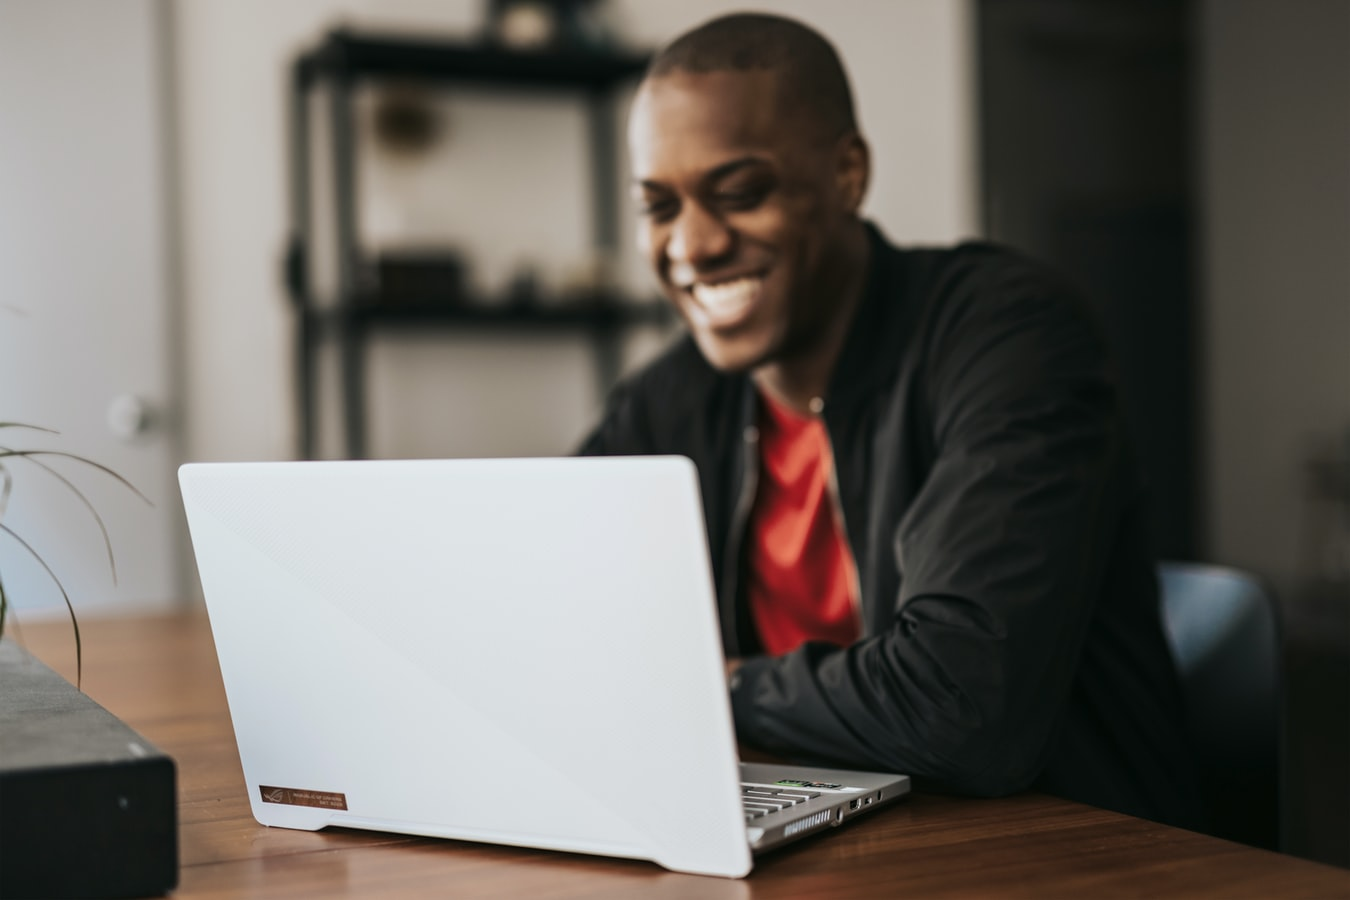 man using laptop happily